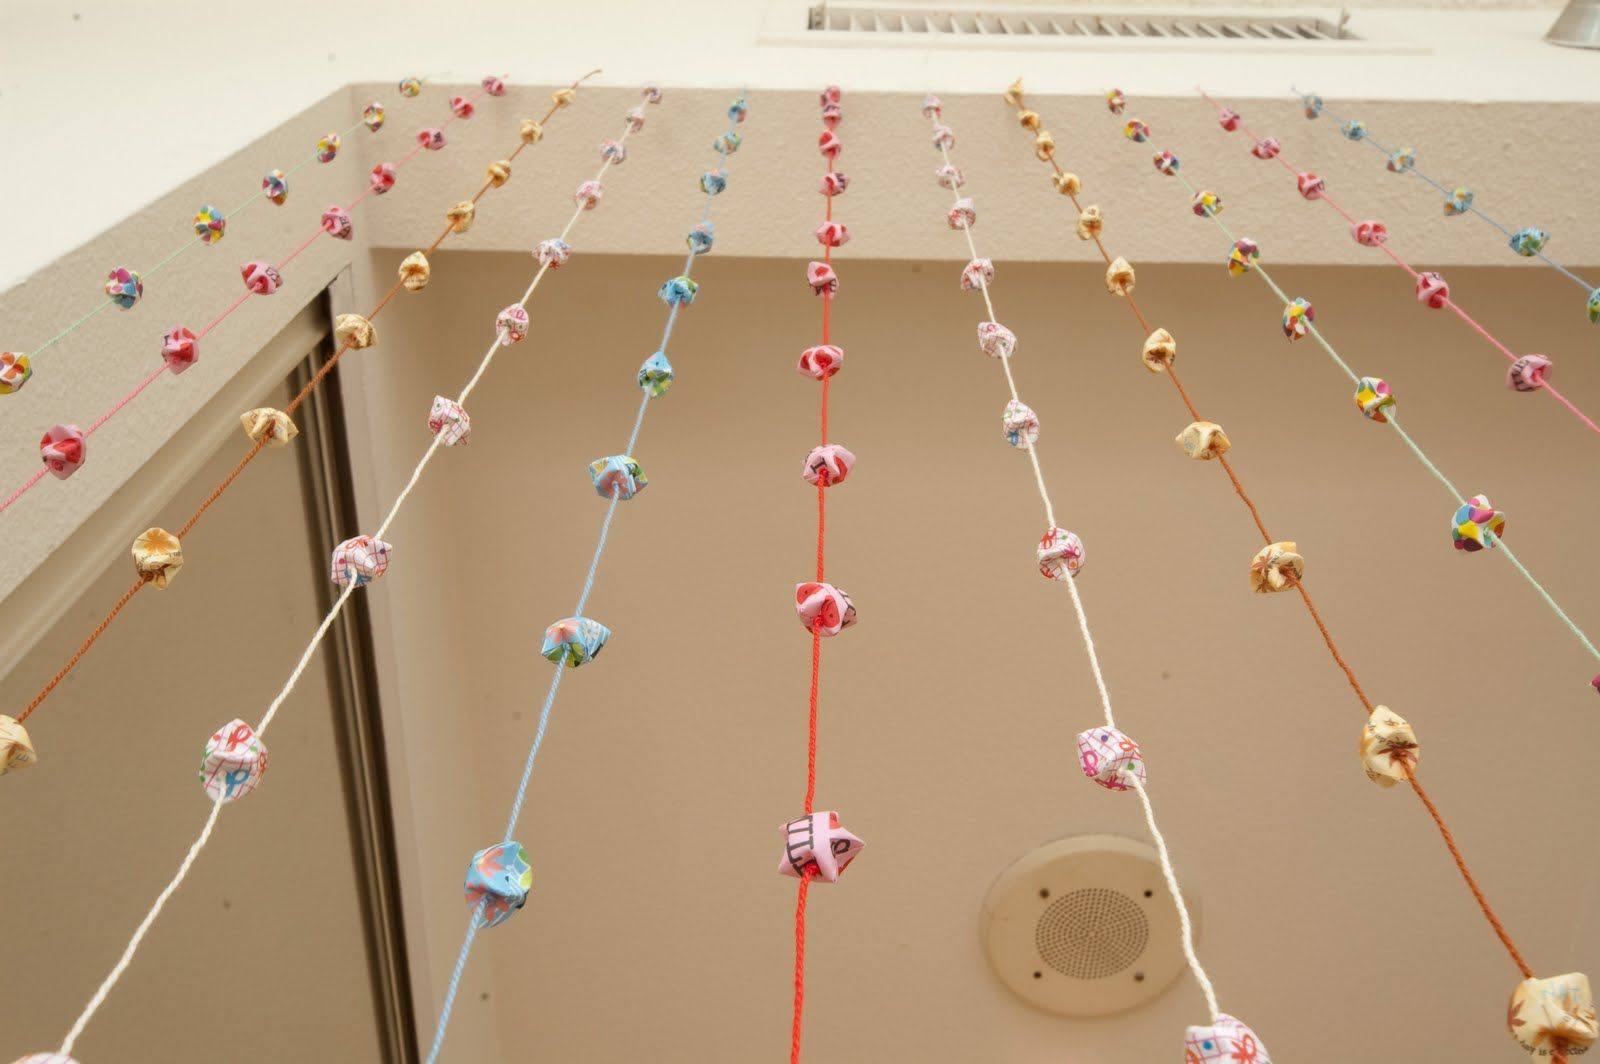 meowmiix: Origami Stars Door Curtain DIY | DIY, Crafts ... - photo#10